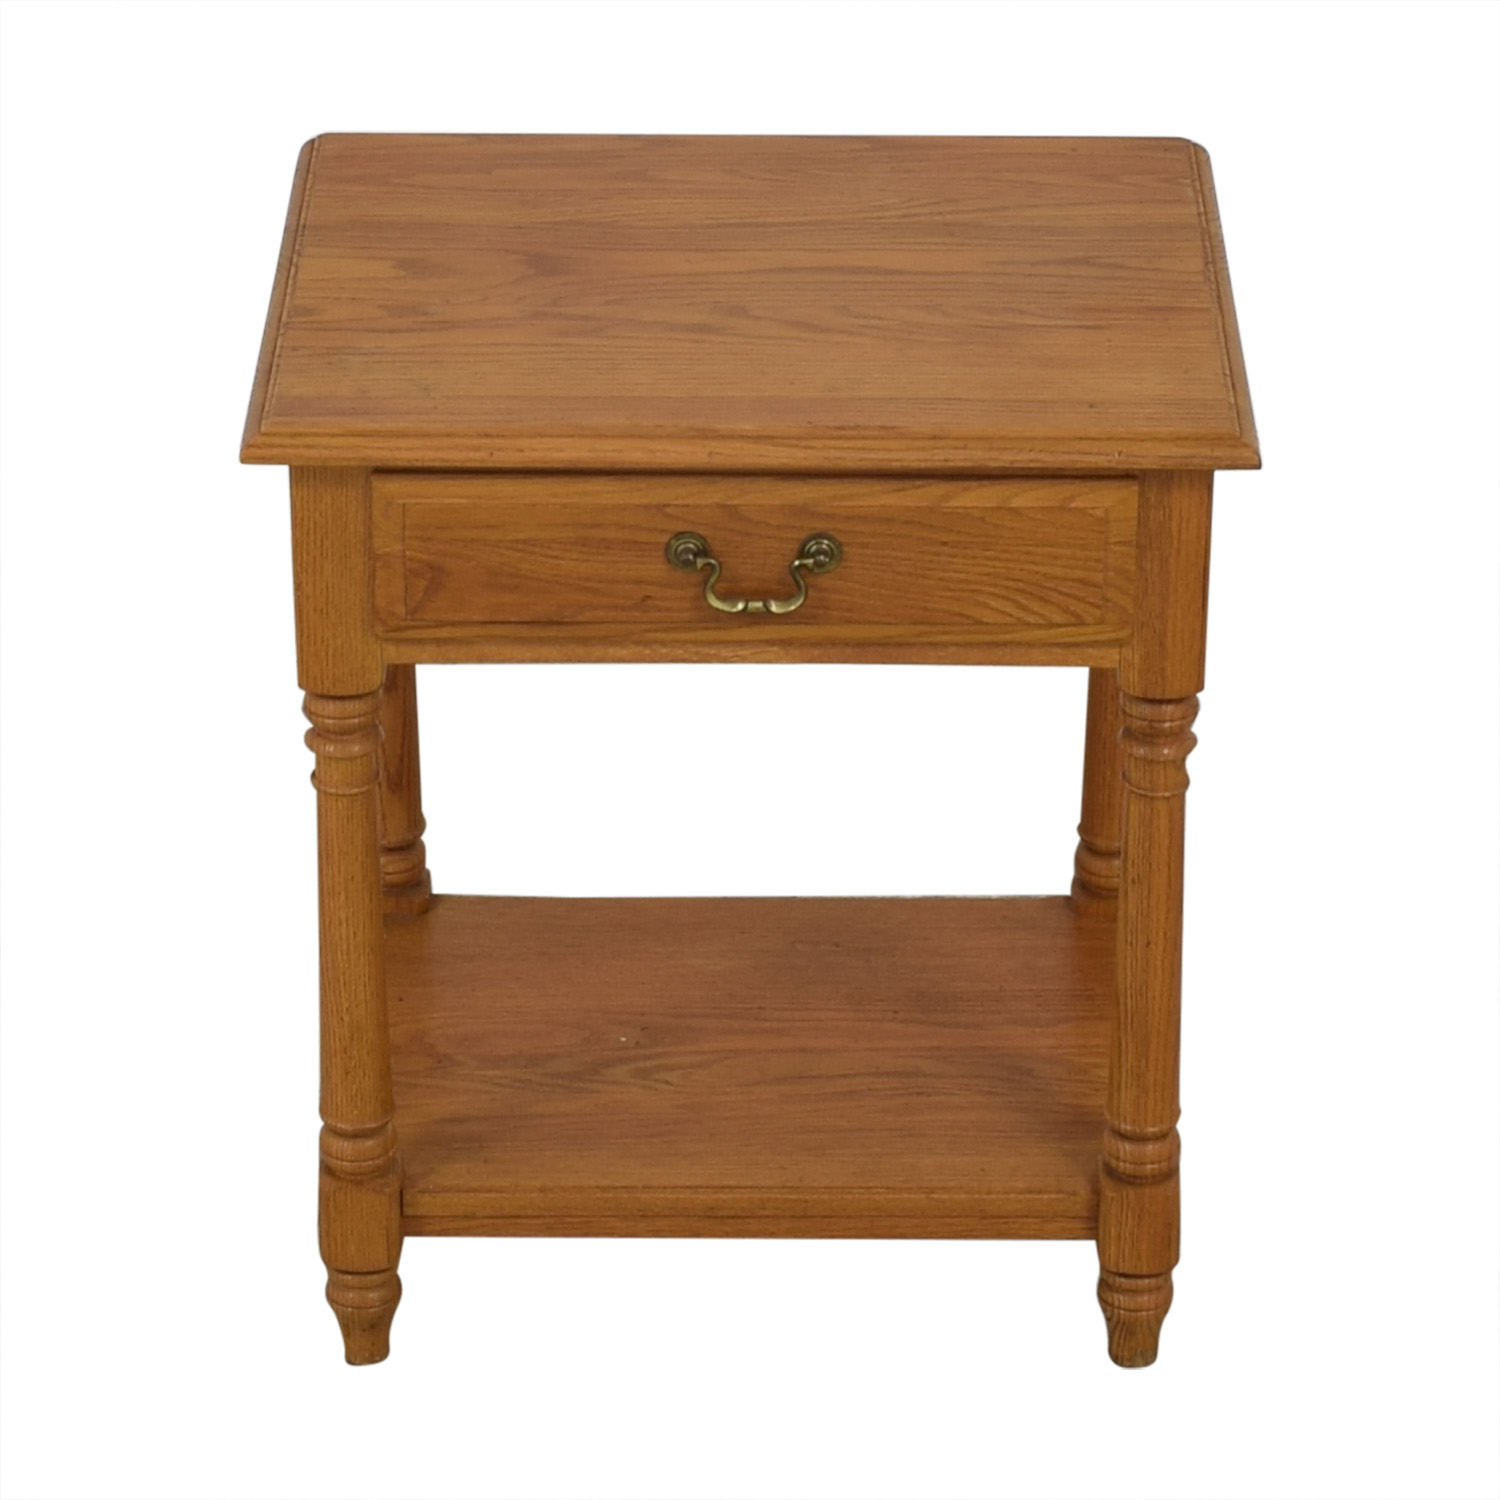 Cool 65 Off Ethan Allen Ethan Allen Canterbury Night Stand Tables Download Free Architecture Designs Scobabritishbridgeorg